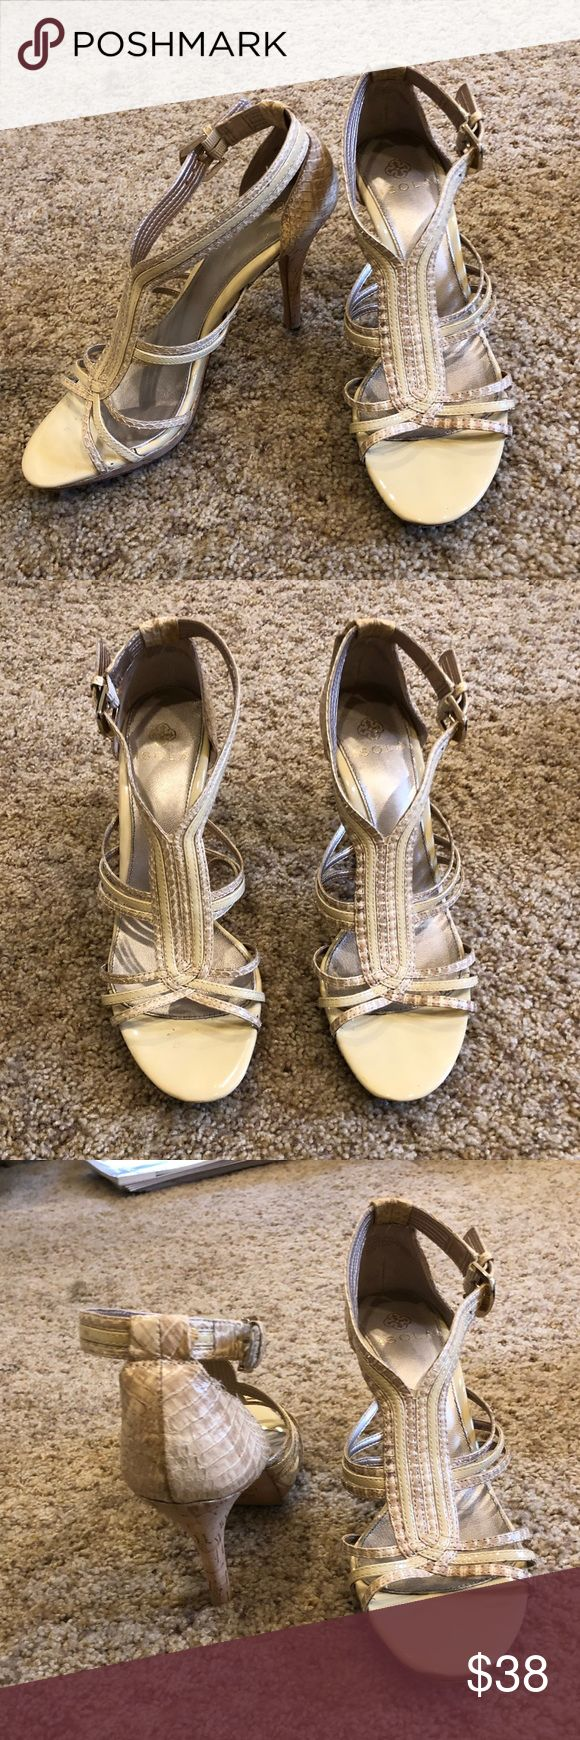 Tan Strappy Heels Tan strappy heels. Very nice shoes. In great condition. Have only been worn once. Isola size 7.5. Shoes Heels